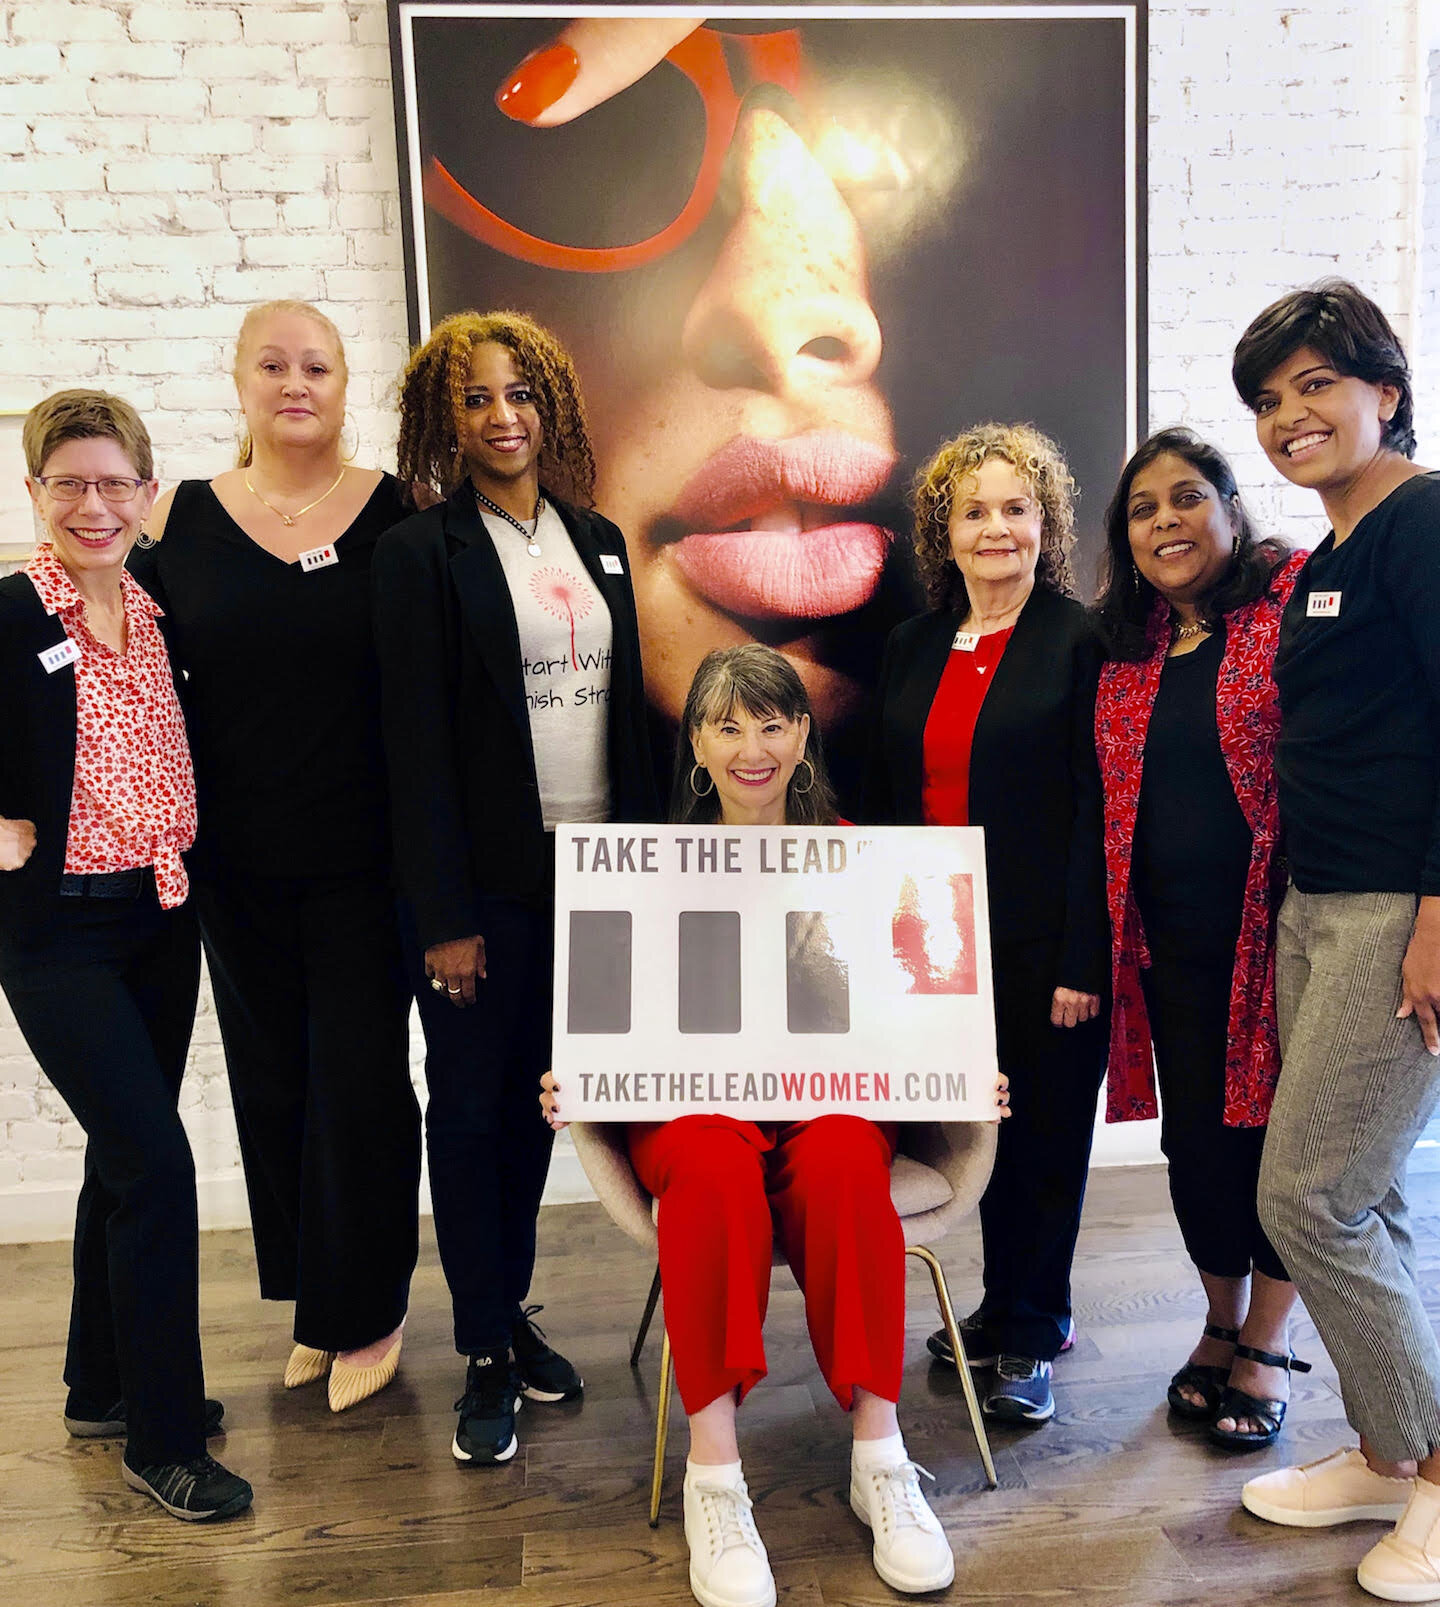 New Leadership Ambassadors ready to deliver the 9 Leadership Power Tools to you and your company. L-R Laura Smith Dunaief (LA Director), Alana Chavez, Colette Ellis, you-know-who in the middle with big feet, Francesca Burack, Surabhi Lai, Vidhi Data.